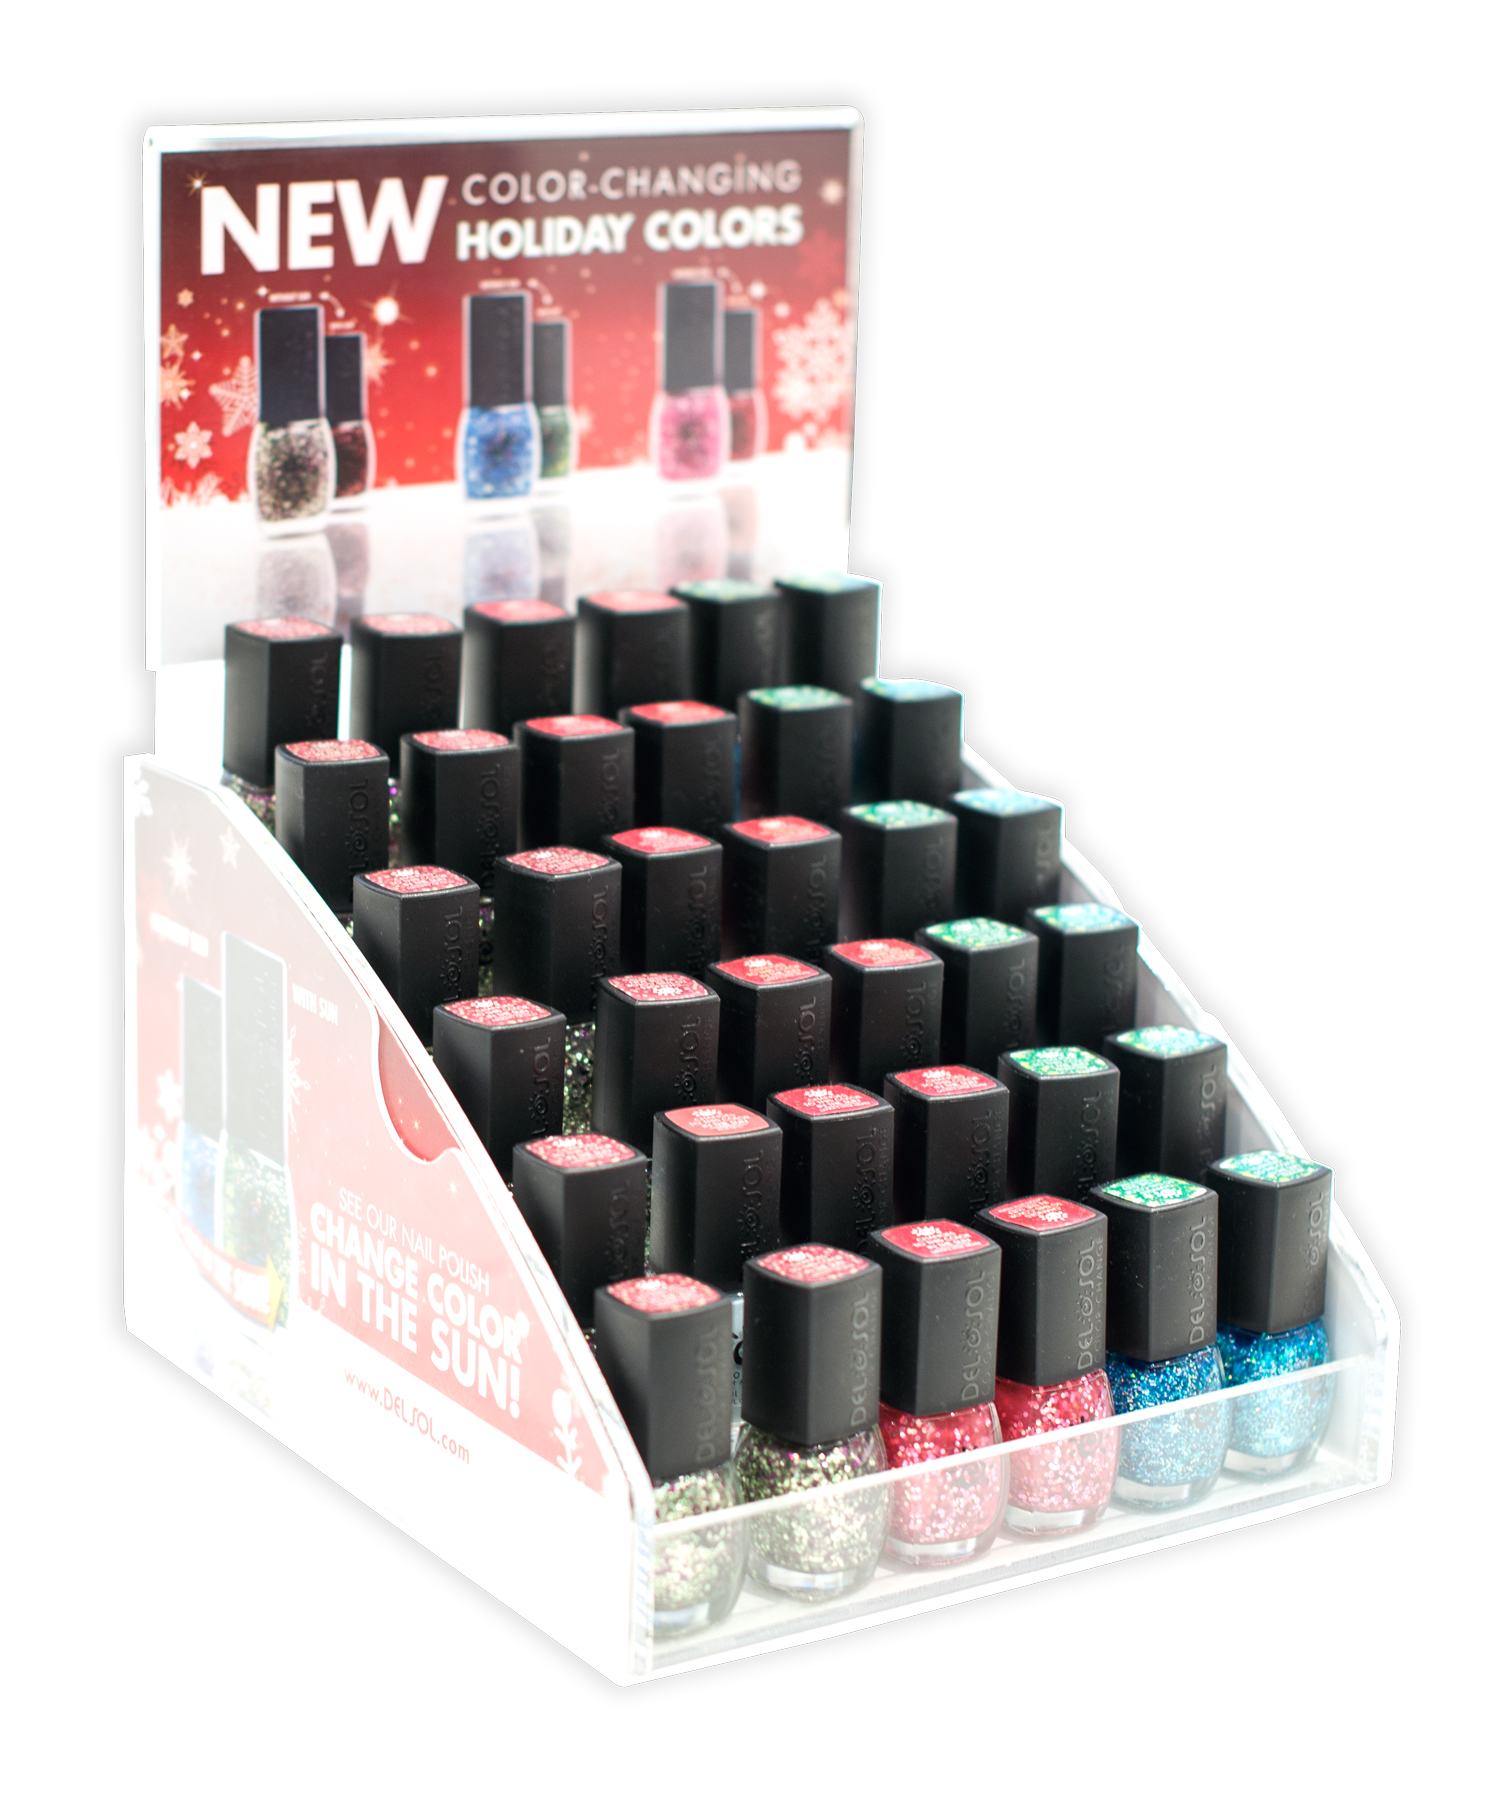 Created new Point of Purchase display to show off Del Sol's new Holiday Polish colors